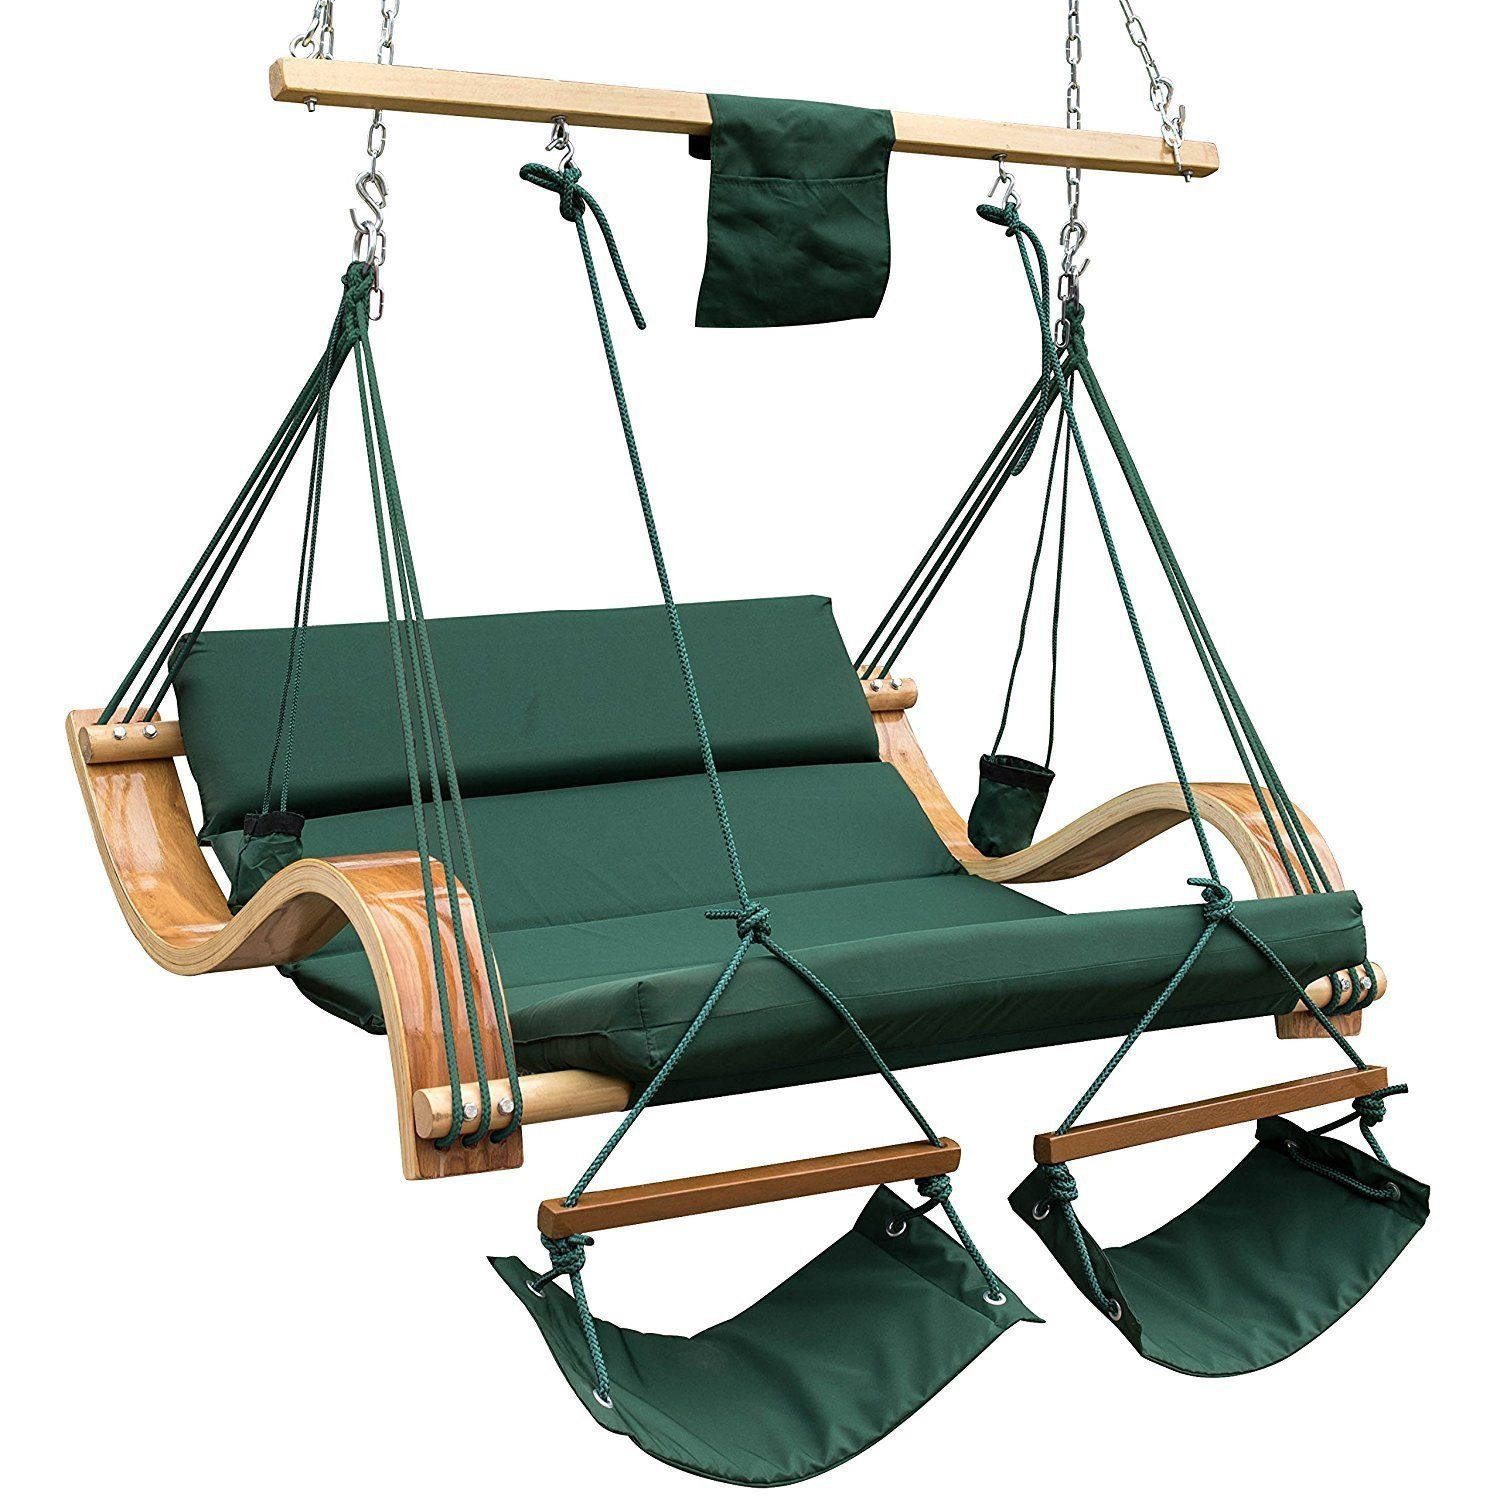 Two Person Deluxe Hanging Hammock Lounger Hanging Hammock Hanging Rope Chair Hammock Chair